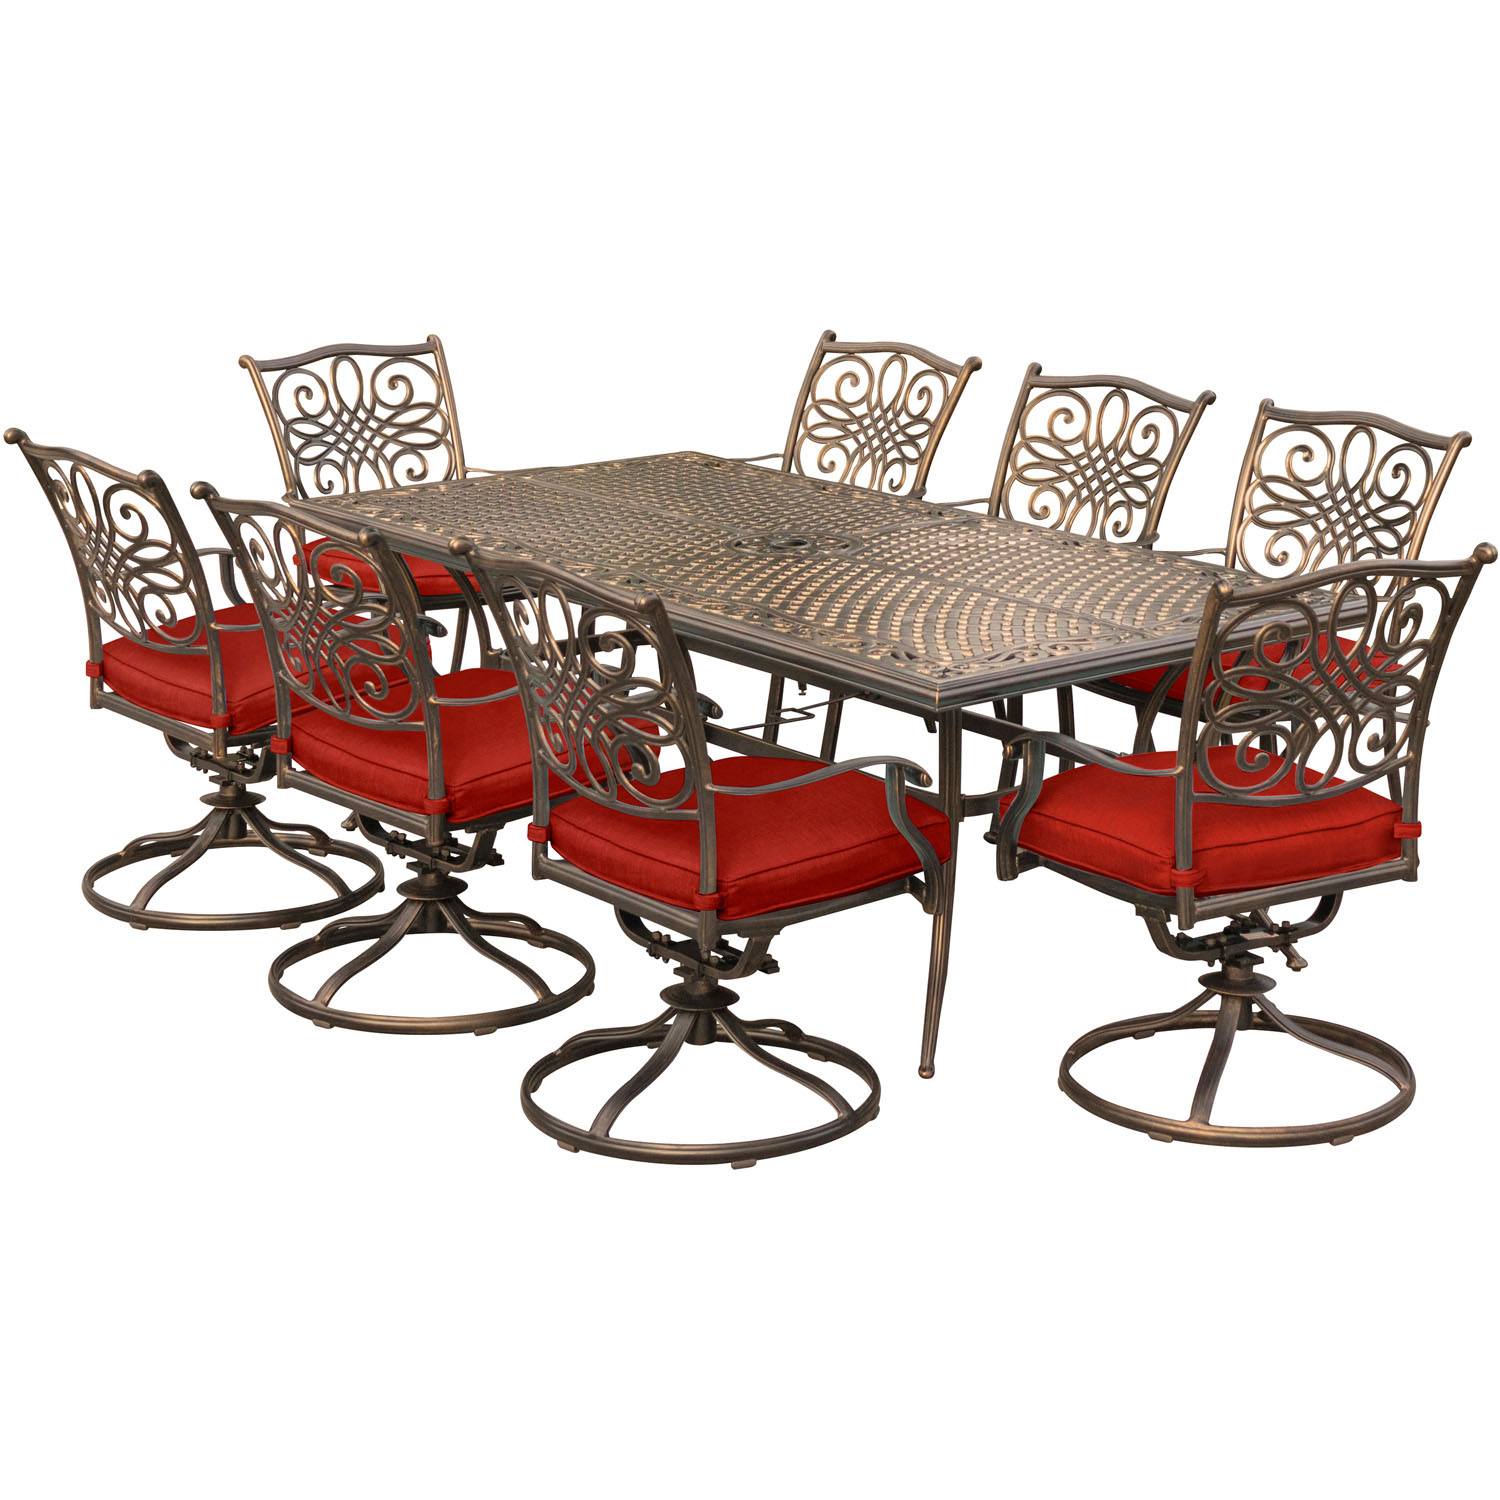 Hanover Traditions 9-Piece Outdoor Dining Set with Cast-Top Table and 8 Swivel Rockers